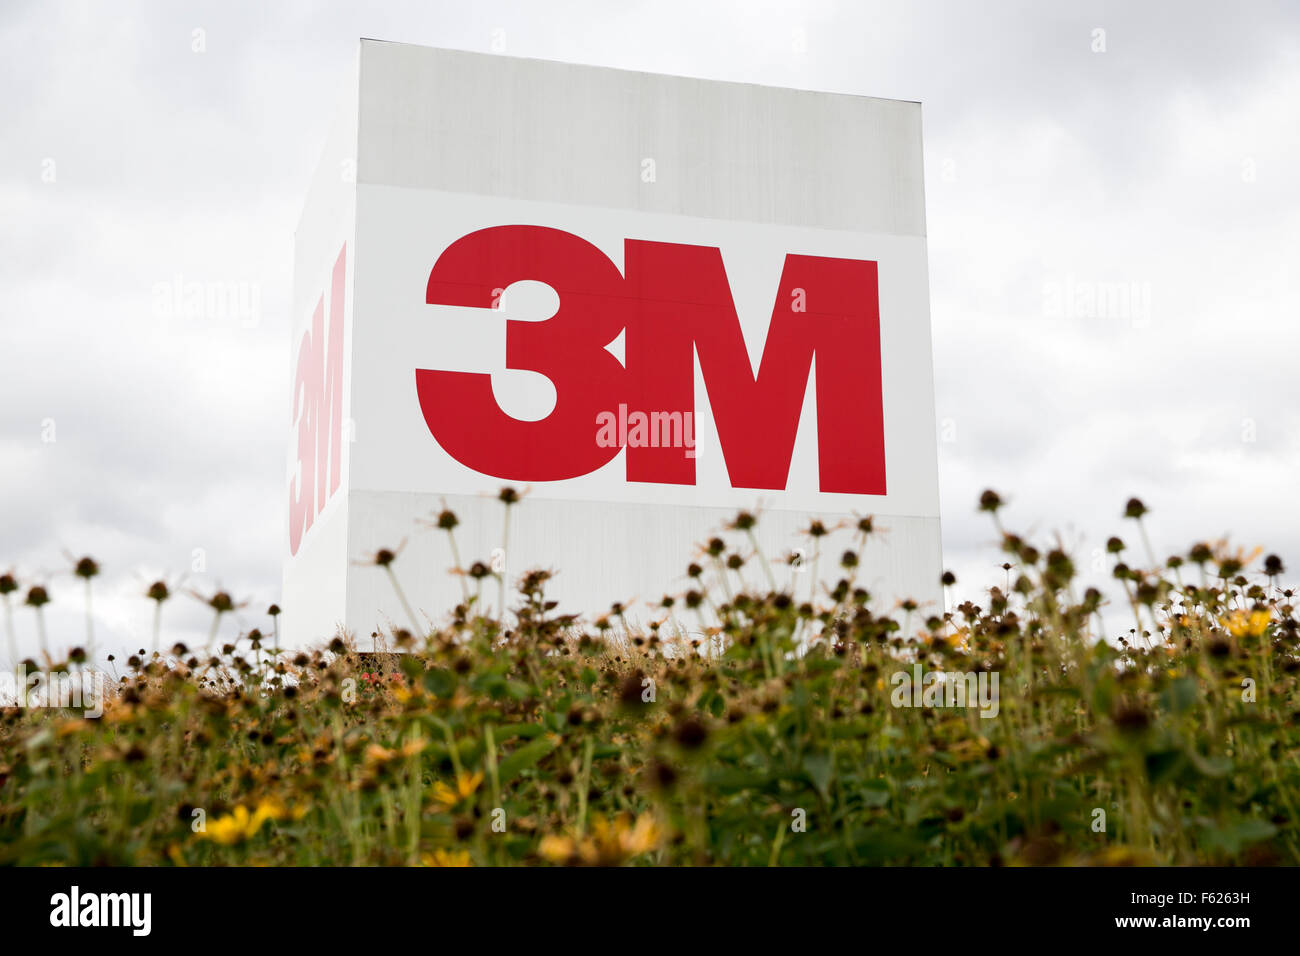 the 3 m company With companies located in more than 60 countries and worldwide sales reaching beyond $20 billion, 3m products are sold in more than 200 countries.